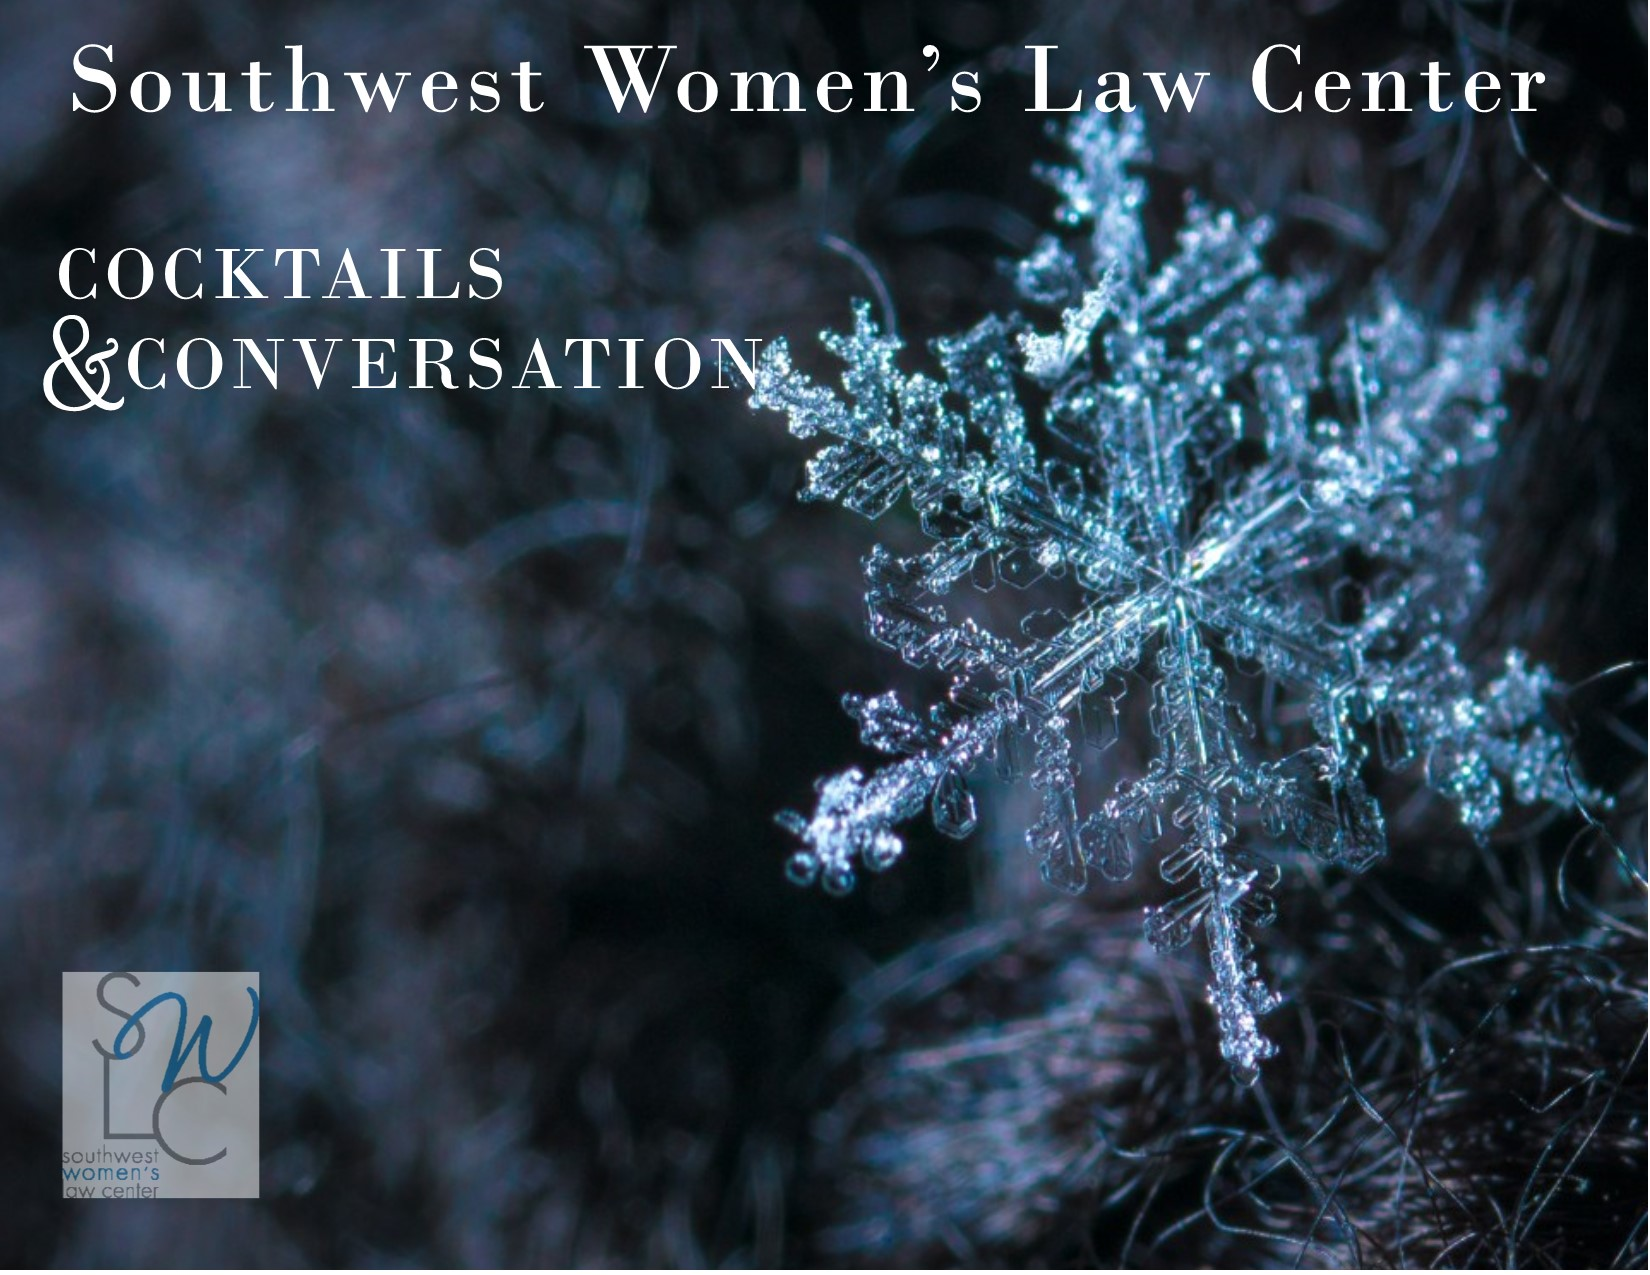 SWLC presents Cocktails & Conversations